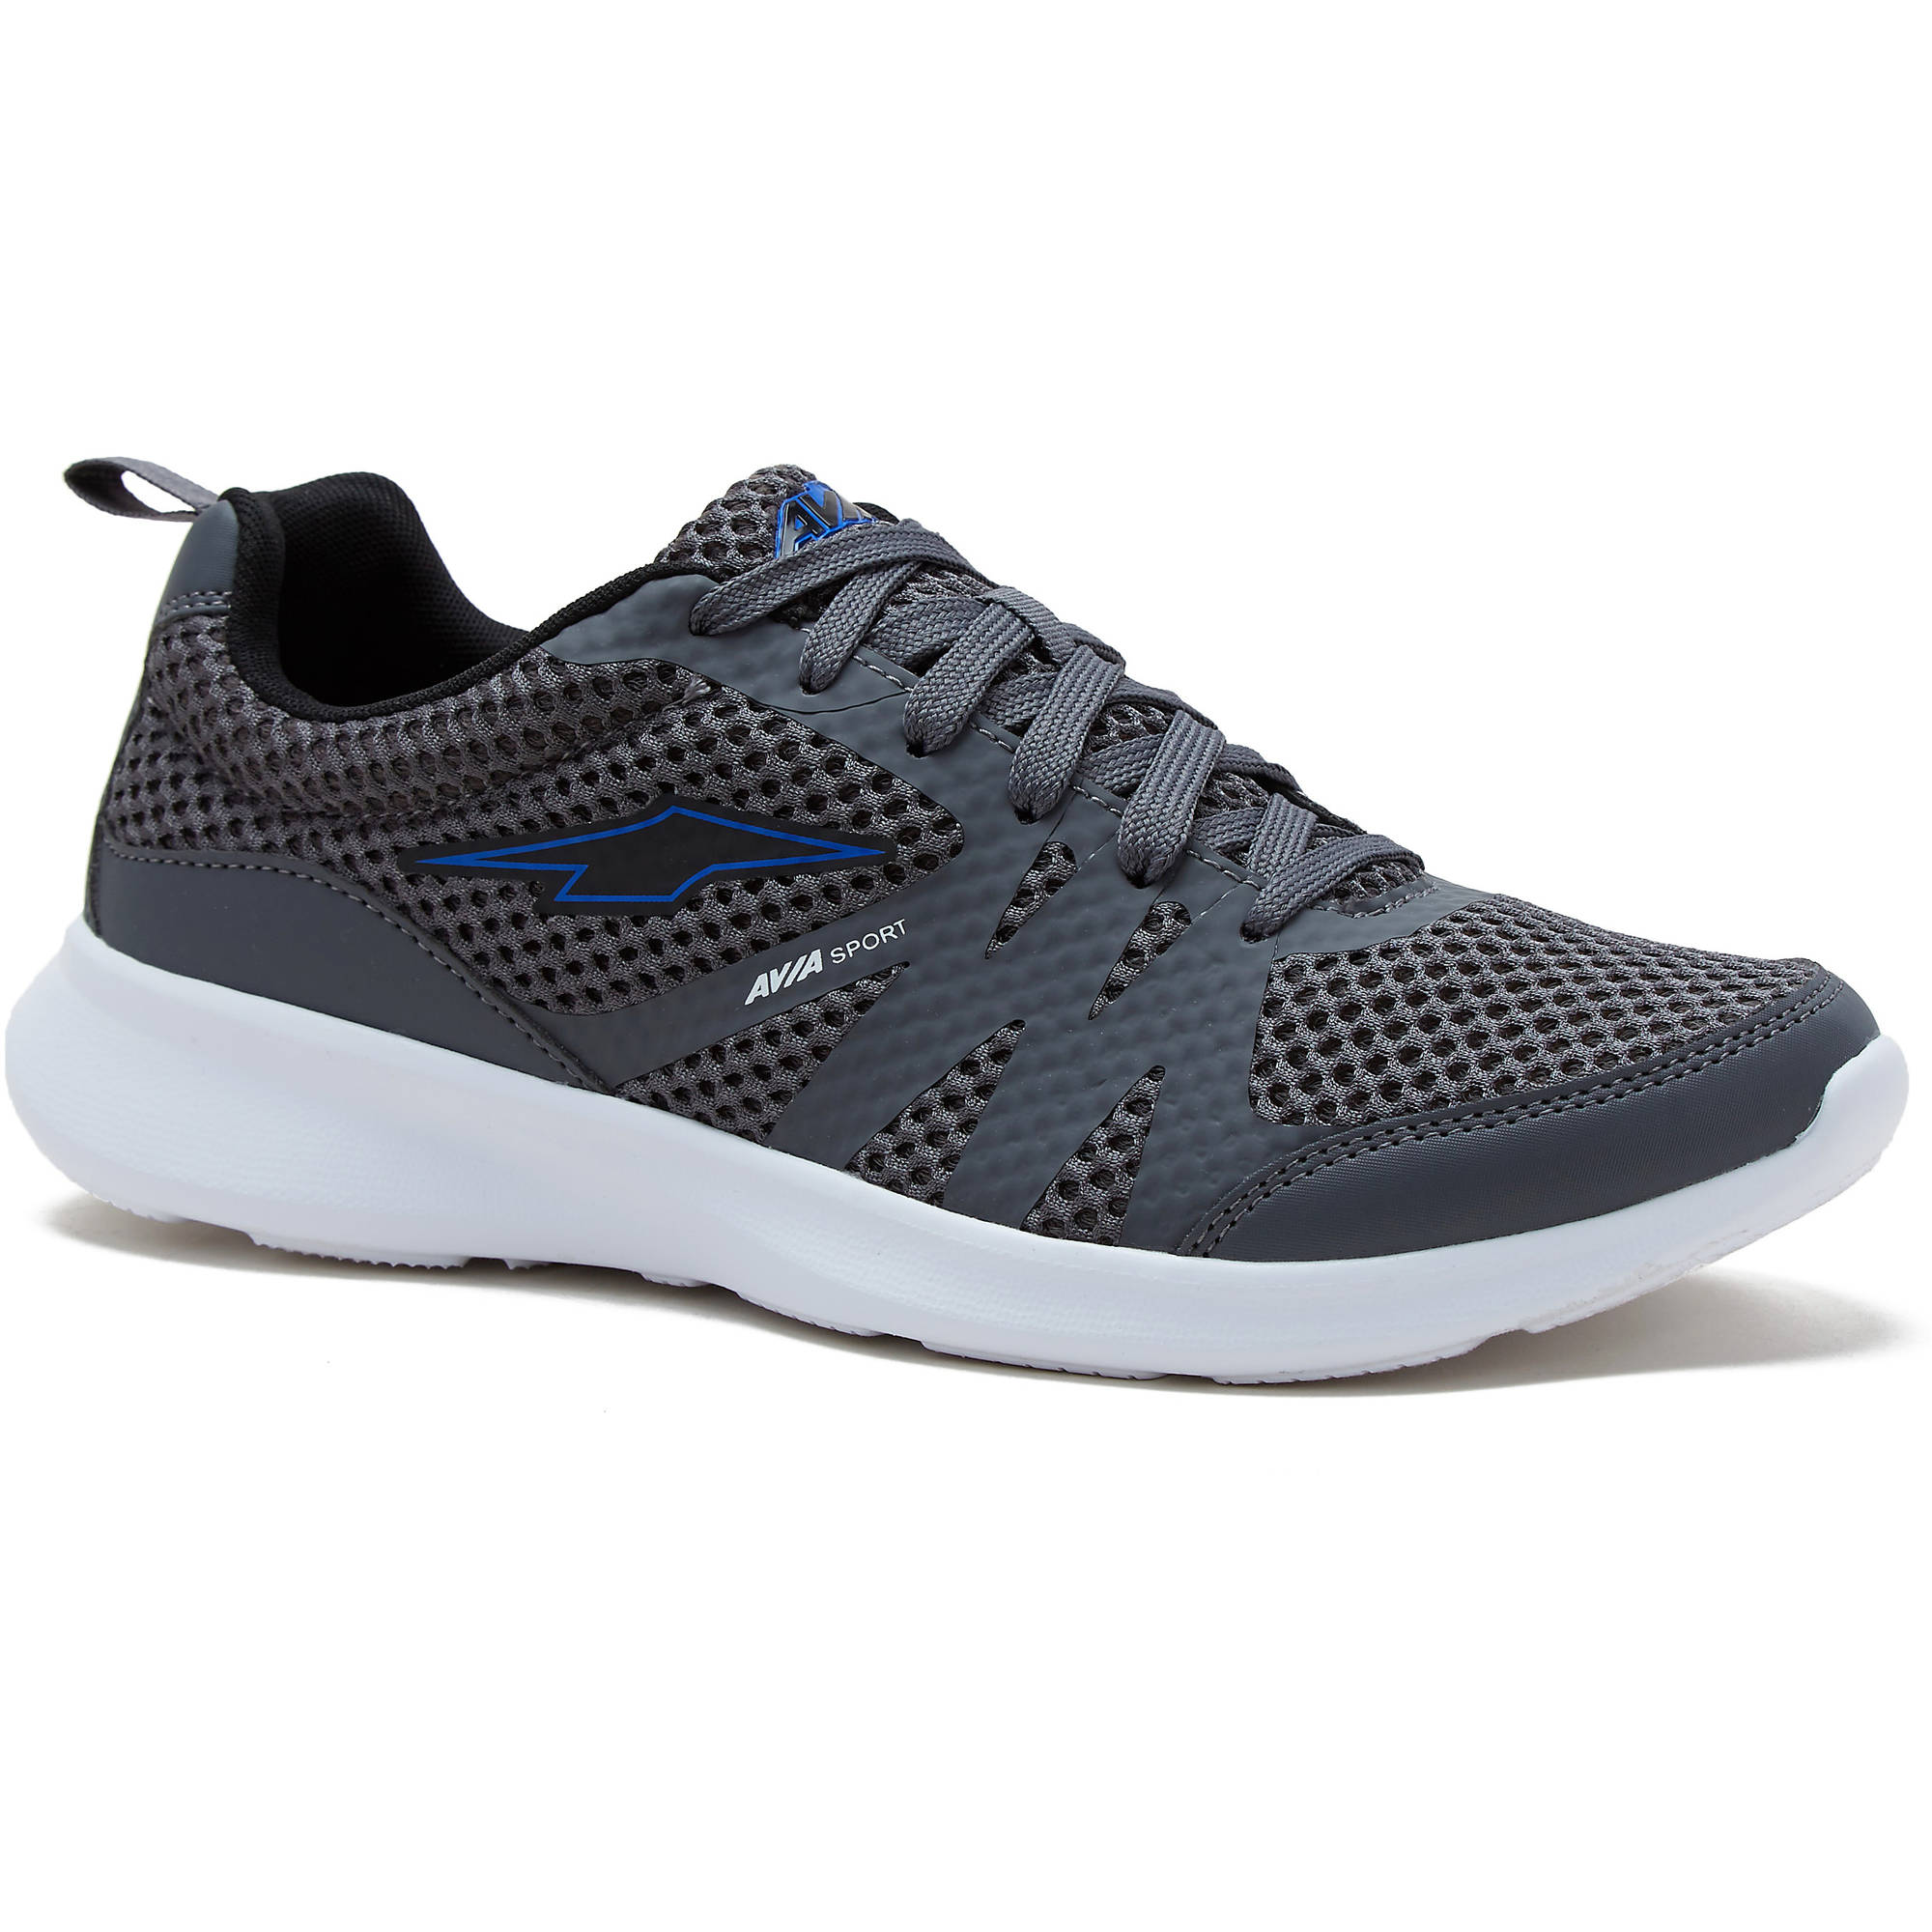 most comfortable nike pinterest archives shoes air comforter trainer pin presto shoesair running